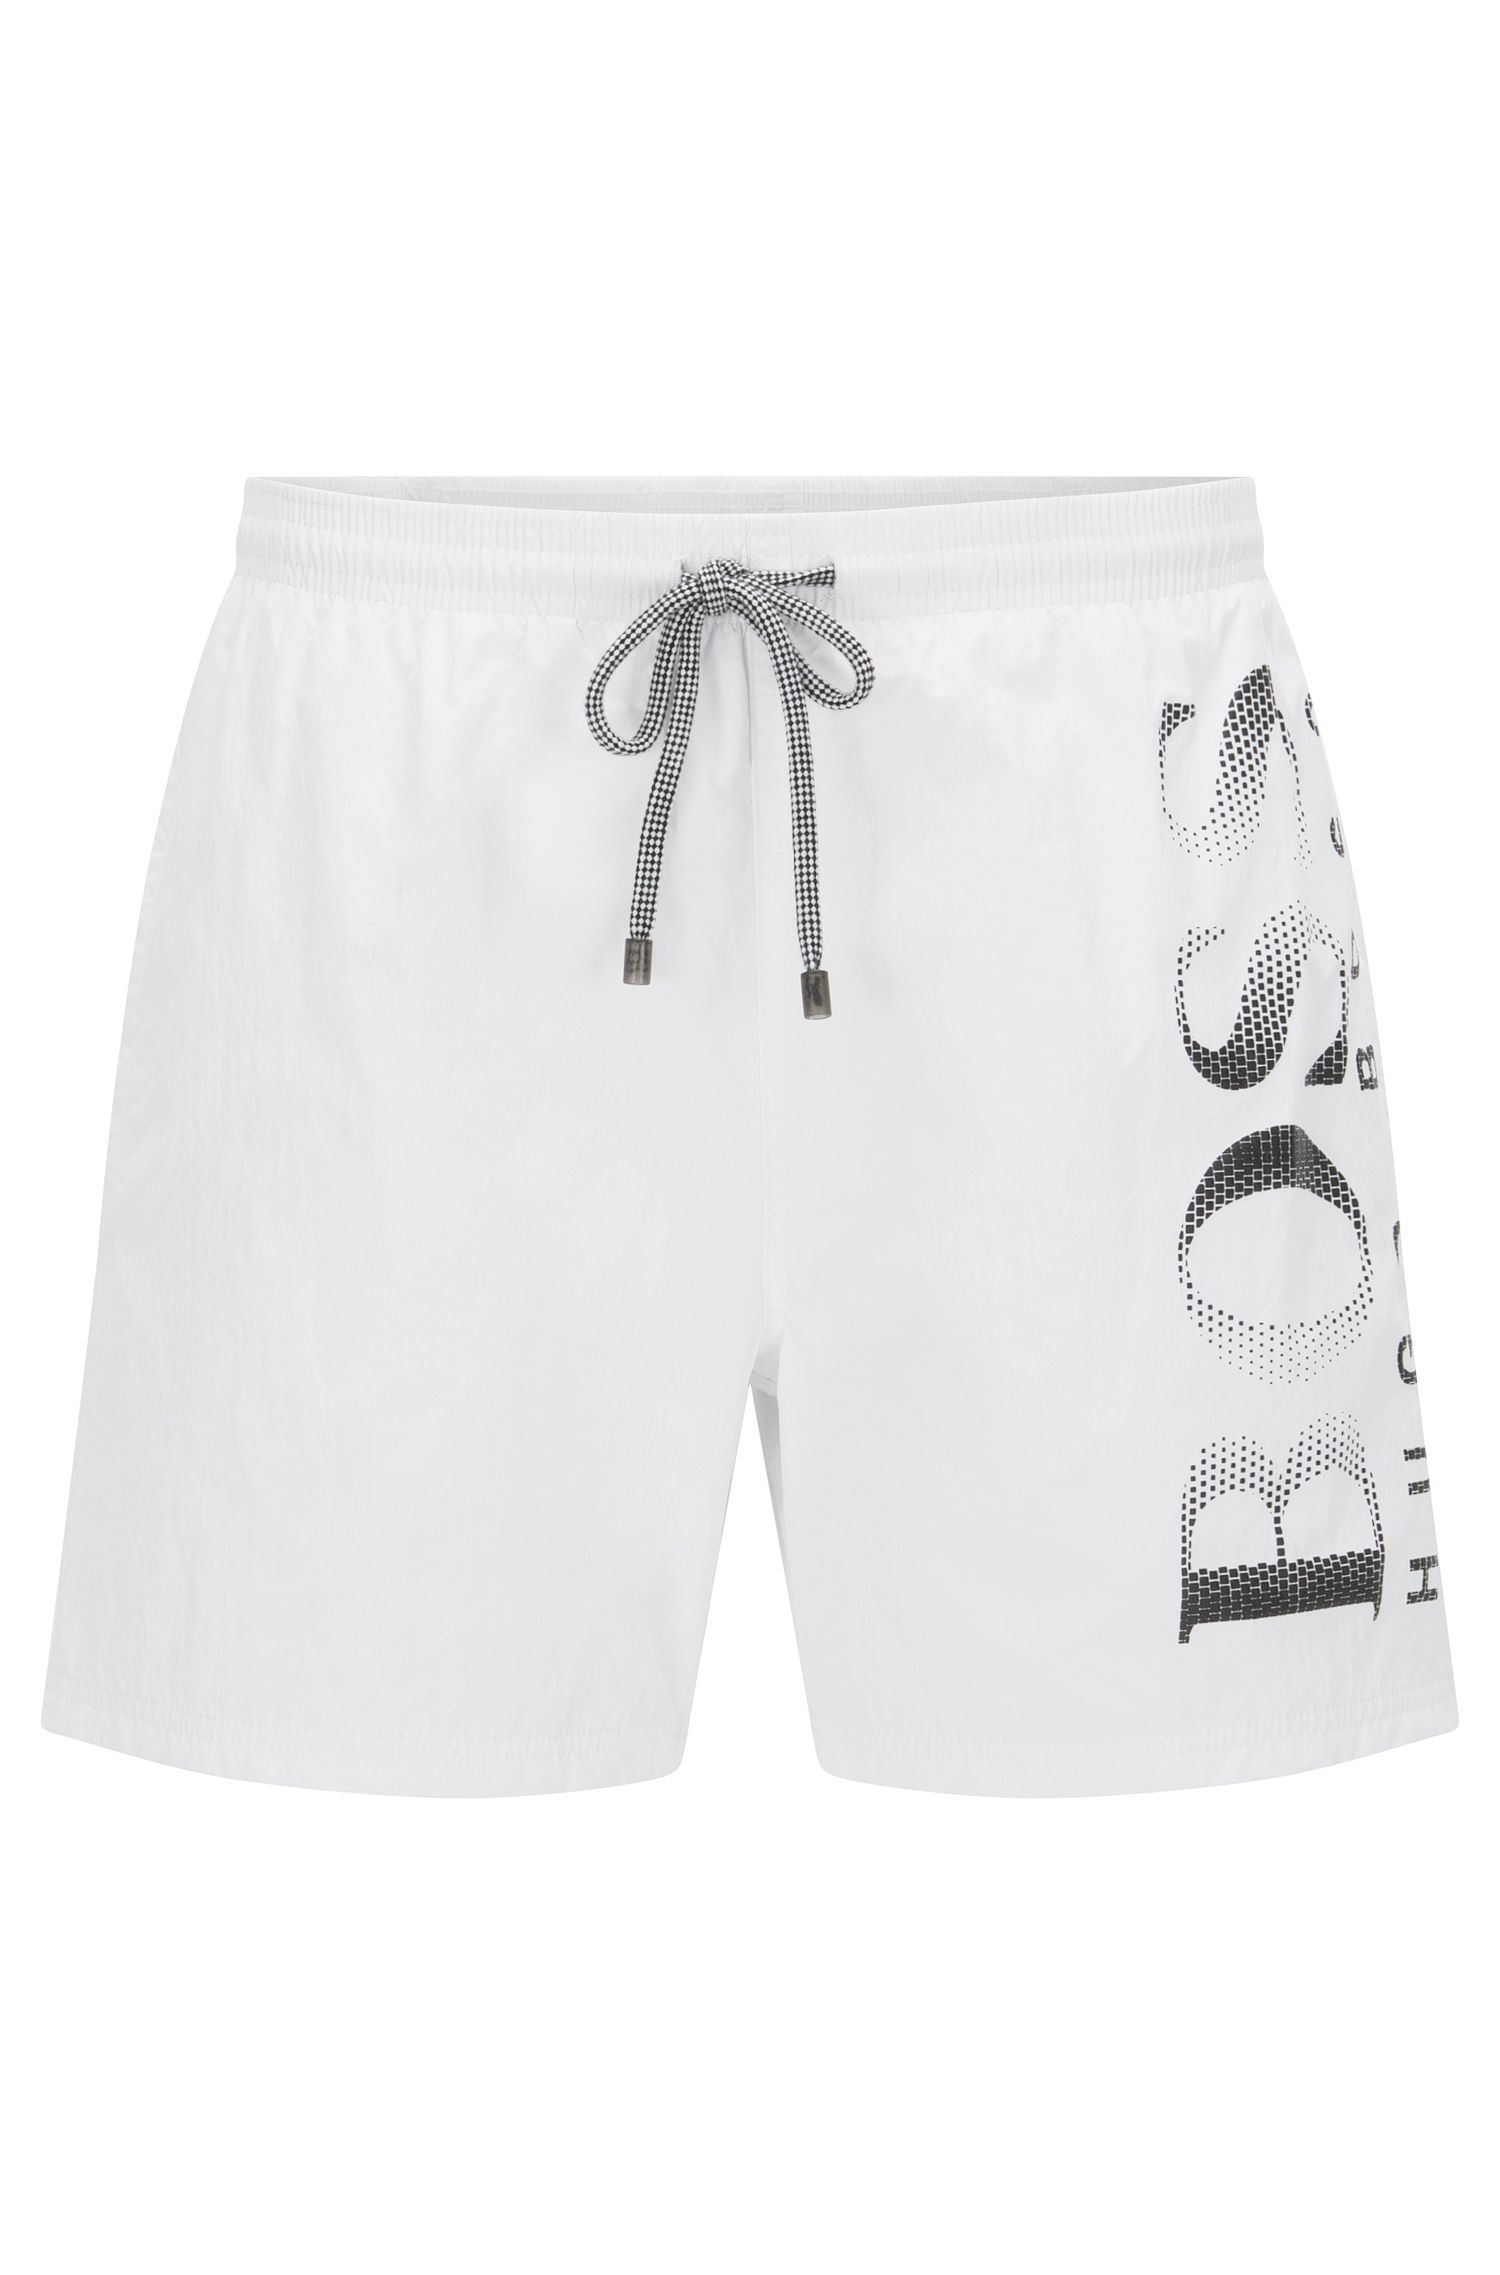 'Octopus' | Quick Dry Swim Trunks